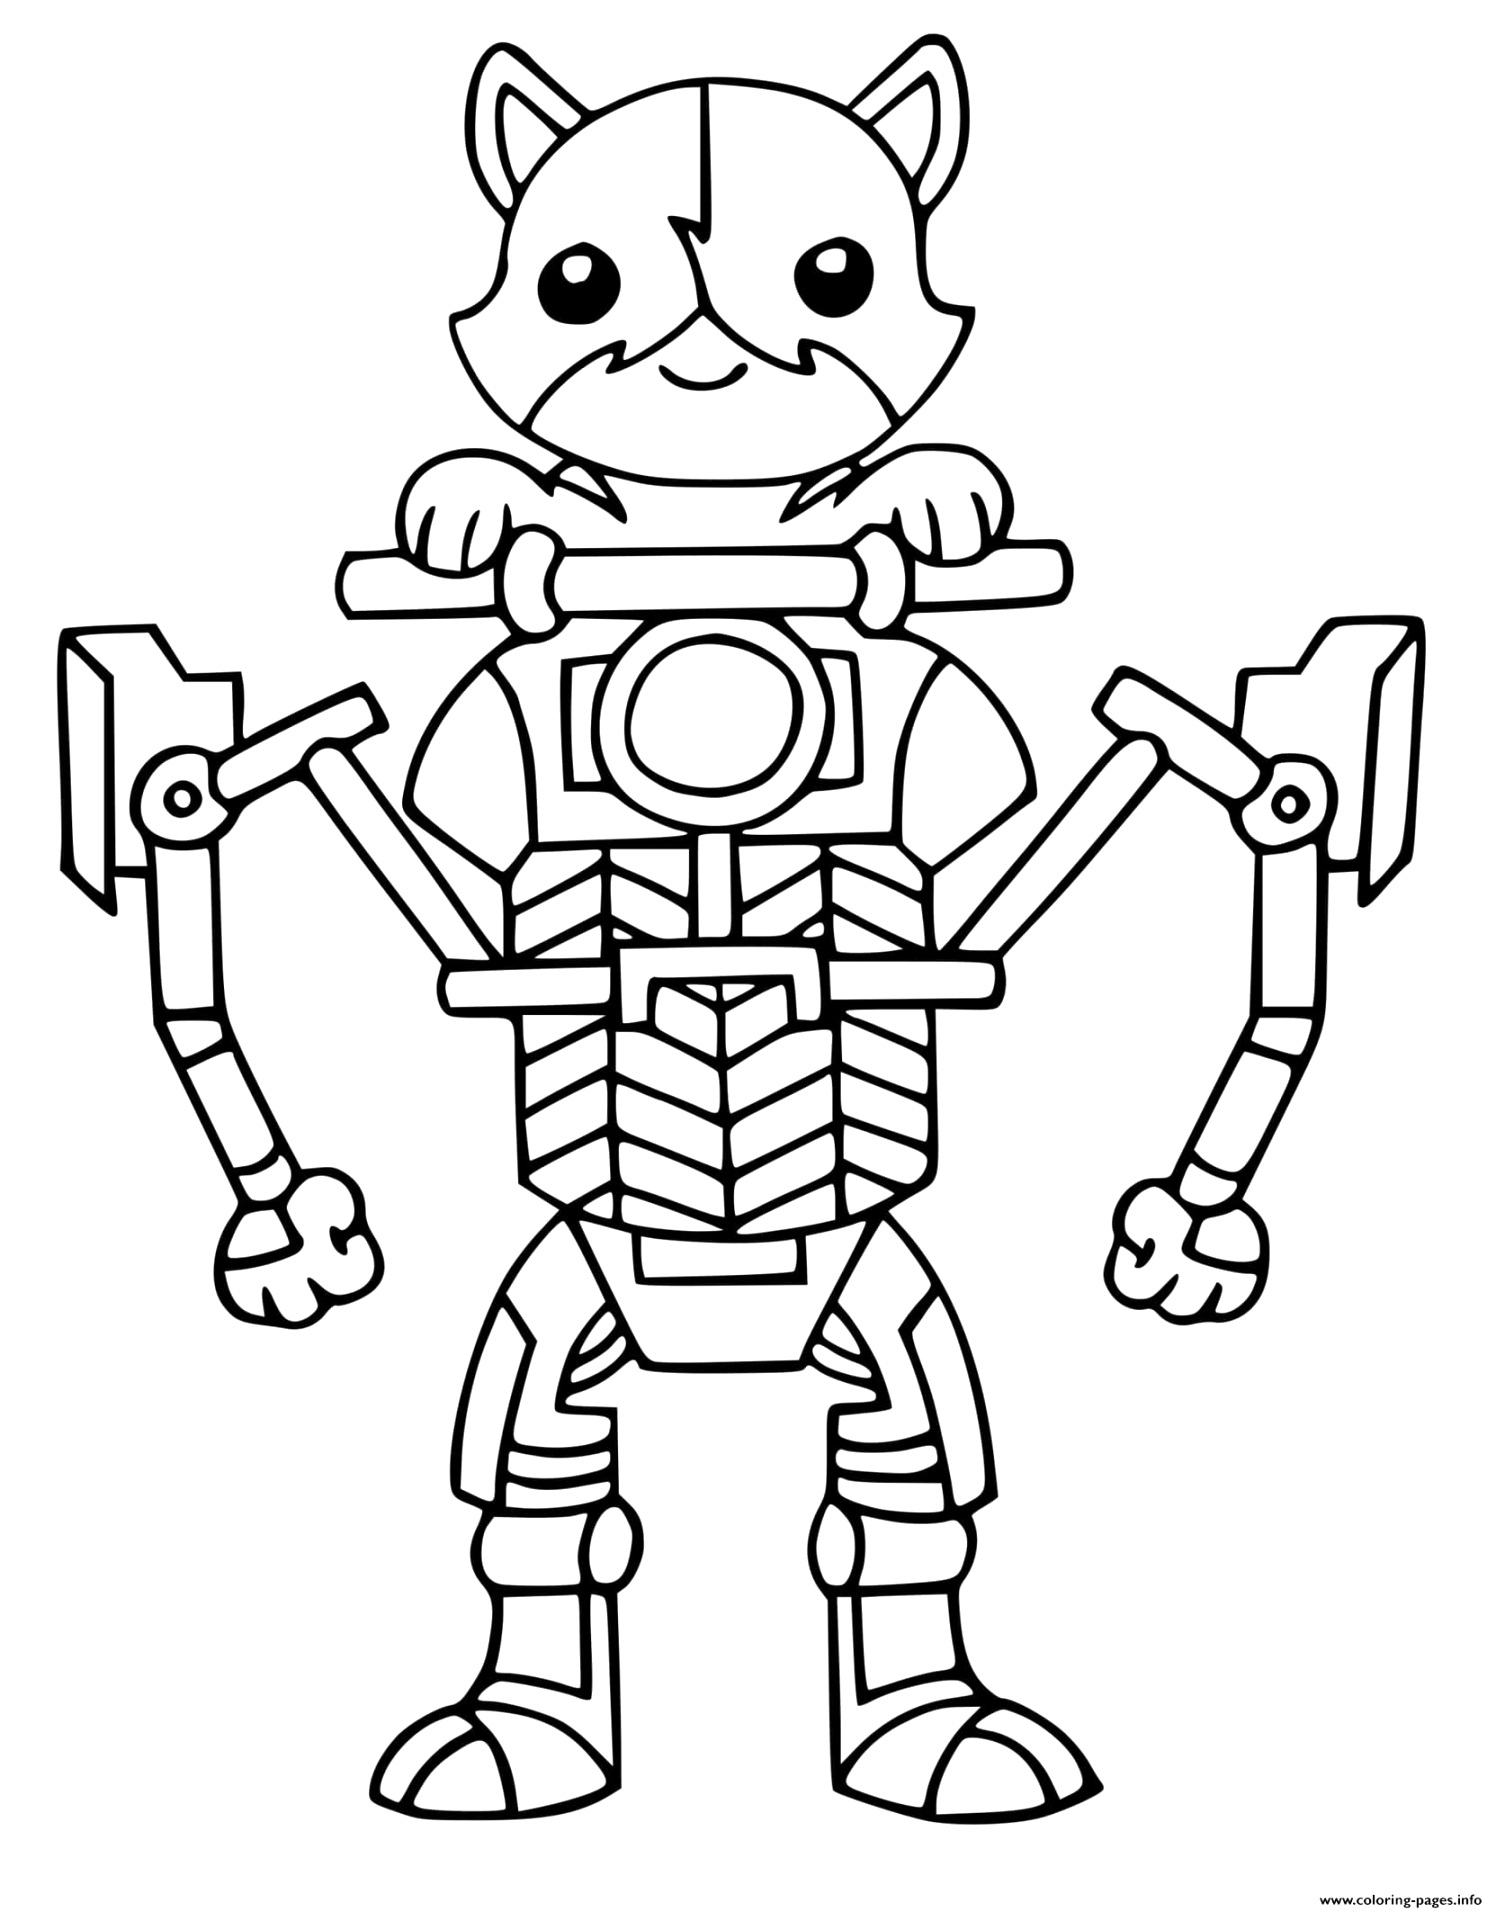 Make your fortnite coloring pages Download and Print for Free